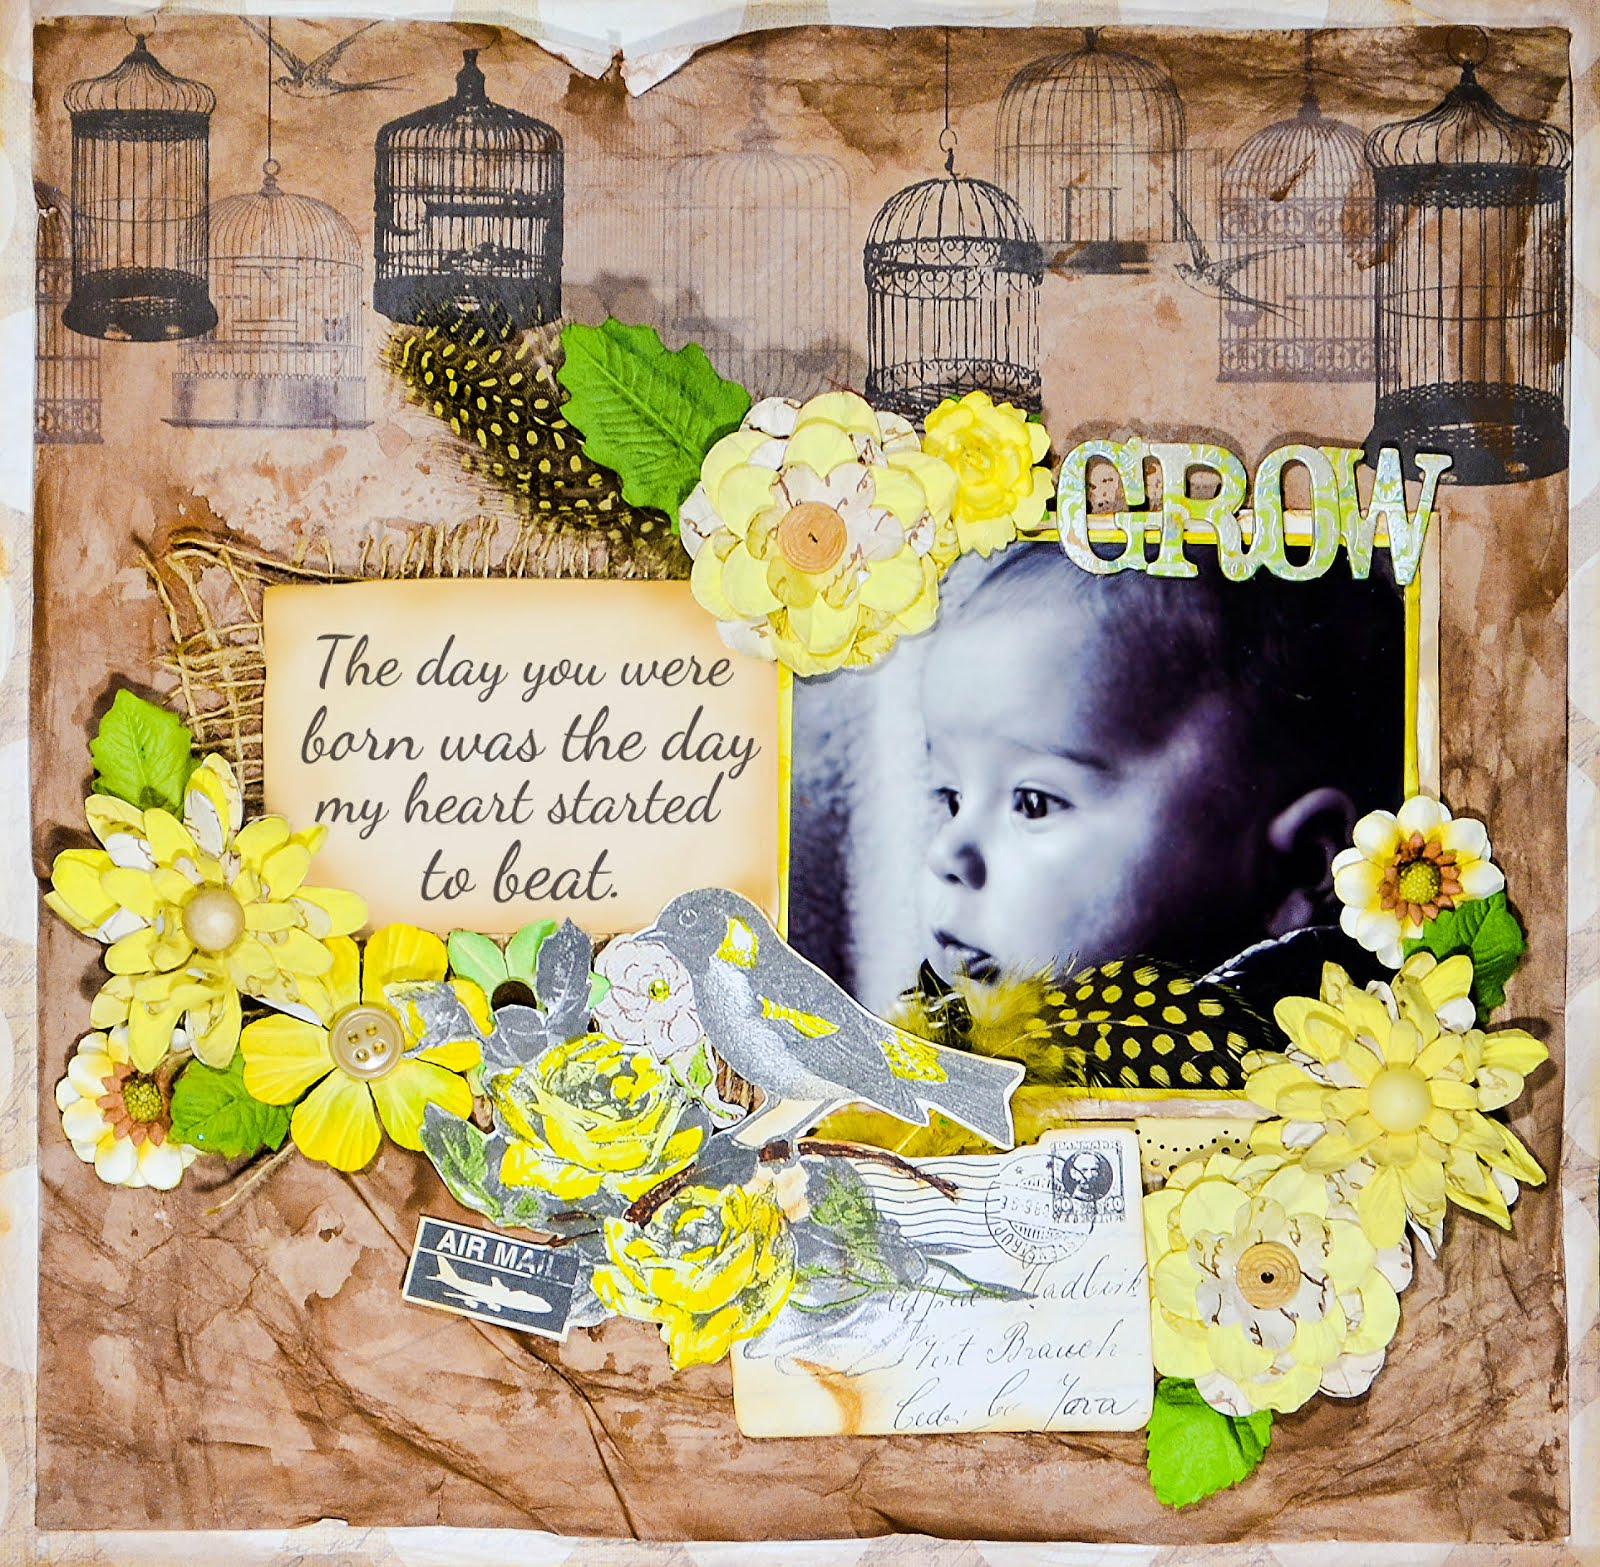 How to delete scrapbook photos google+ - Scrapbook Layout Page In Brown And Yellow Featuring A Bird Theme And Lots Of Flowers